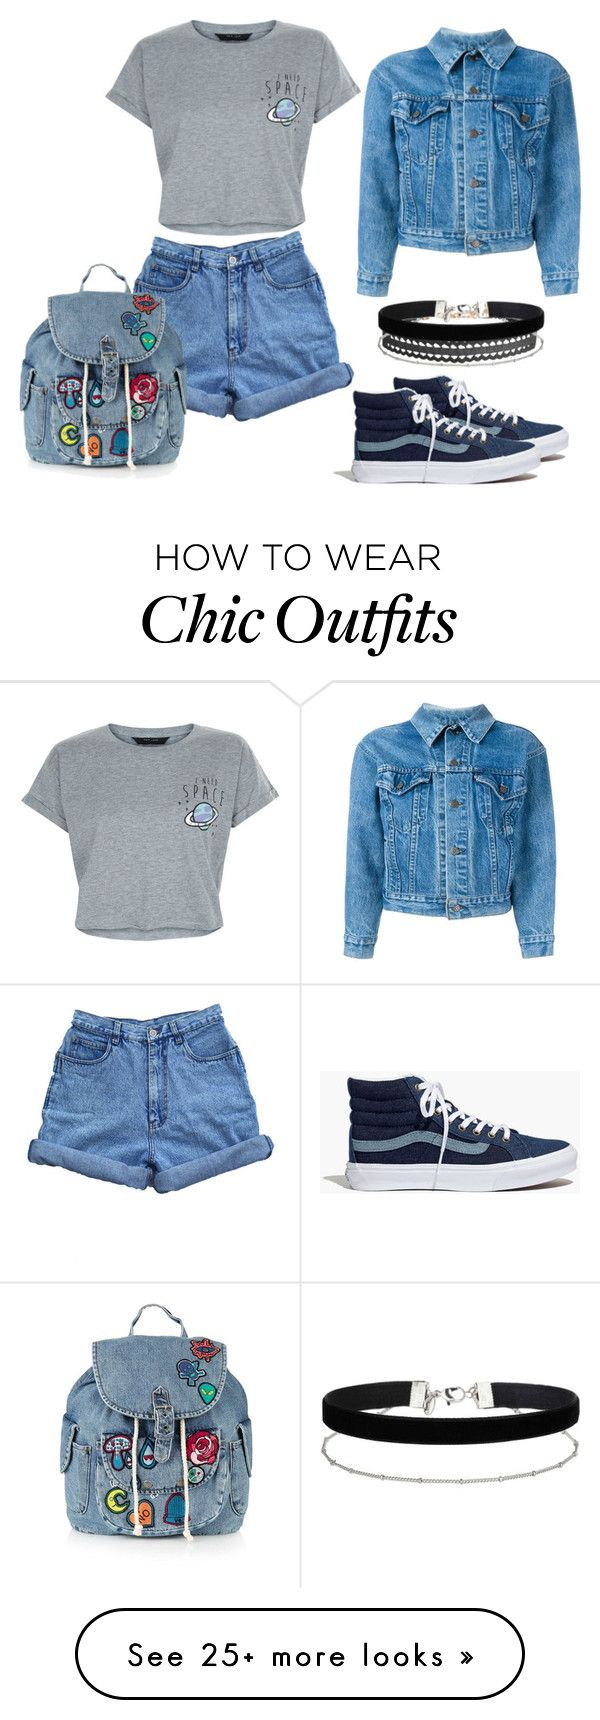 """Bez naslova #46"" by emiiina on Polyvore featuring Bill Blass, New Look, Madewell, Humble Chic, Miss Selfridge, Levi's and Topshop"